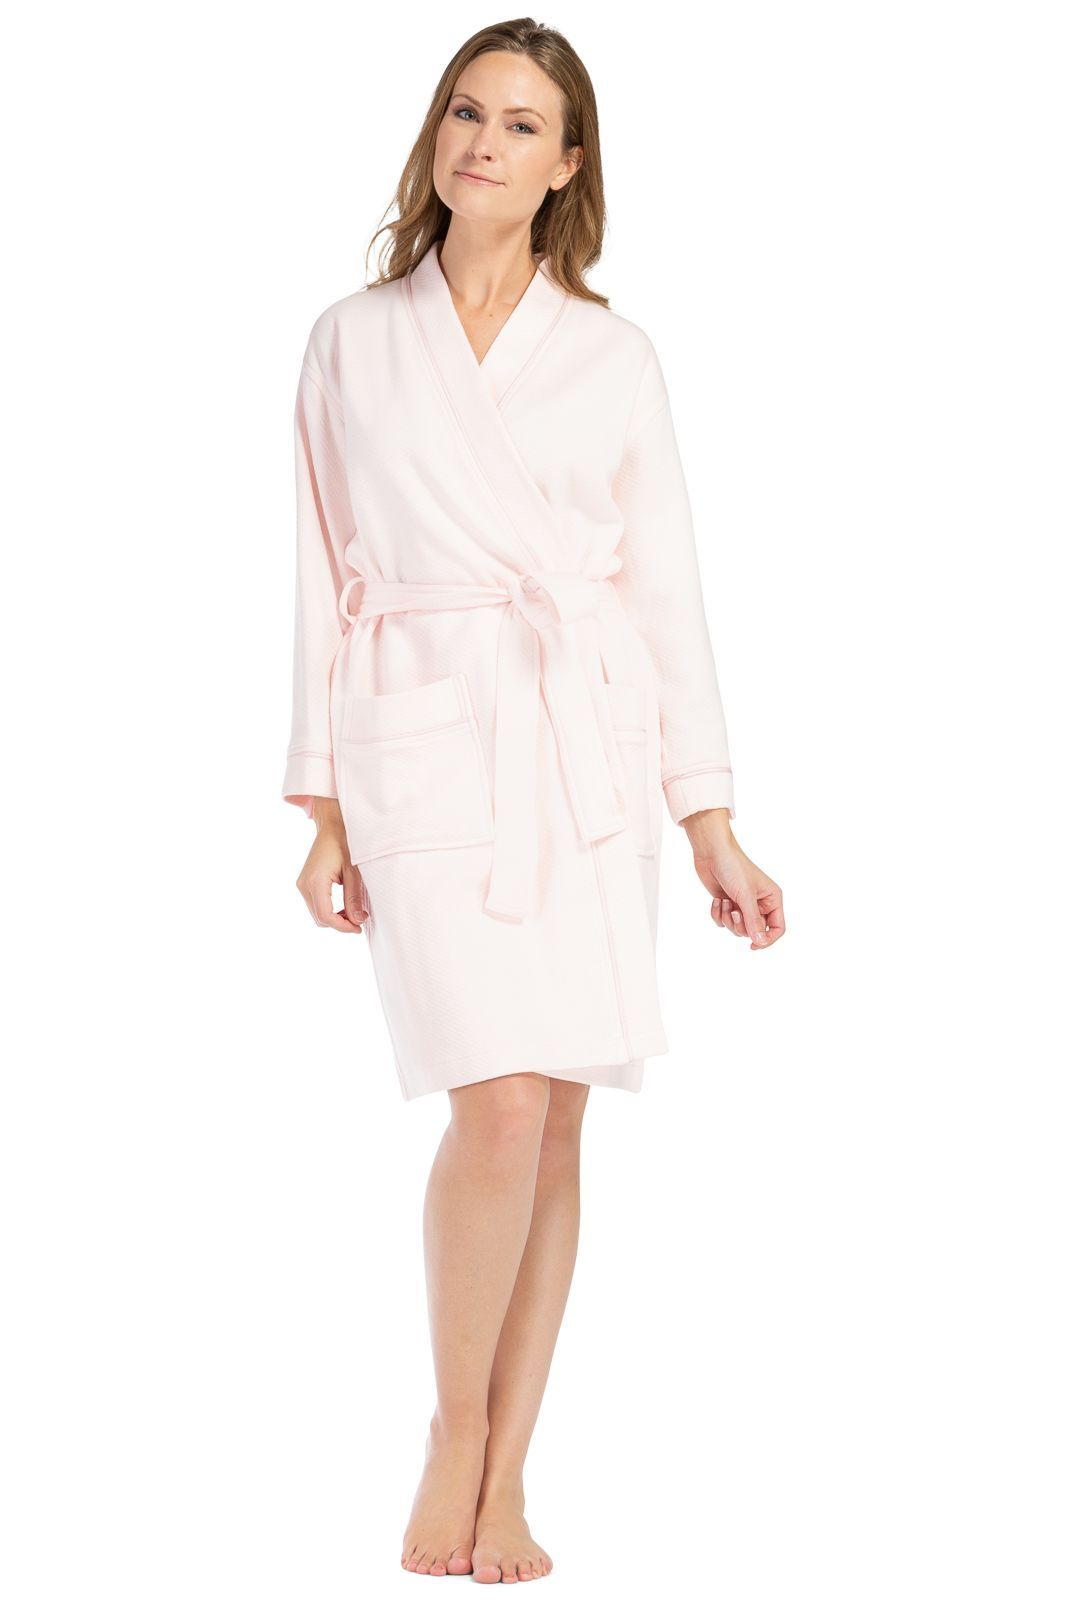 Women's Kimono Resort Spa Robe - Quilted Design - Fishers Finery